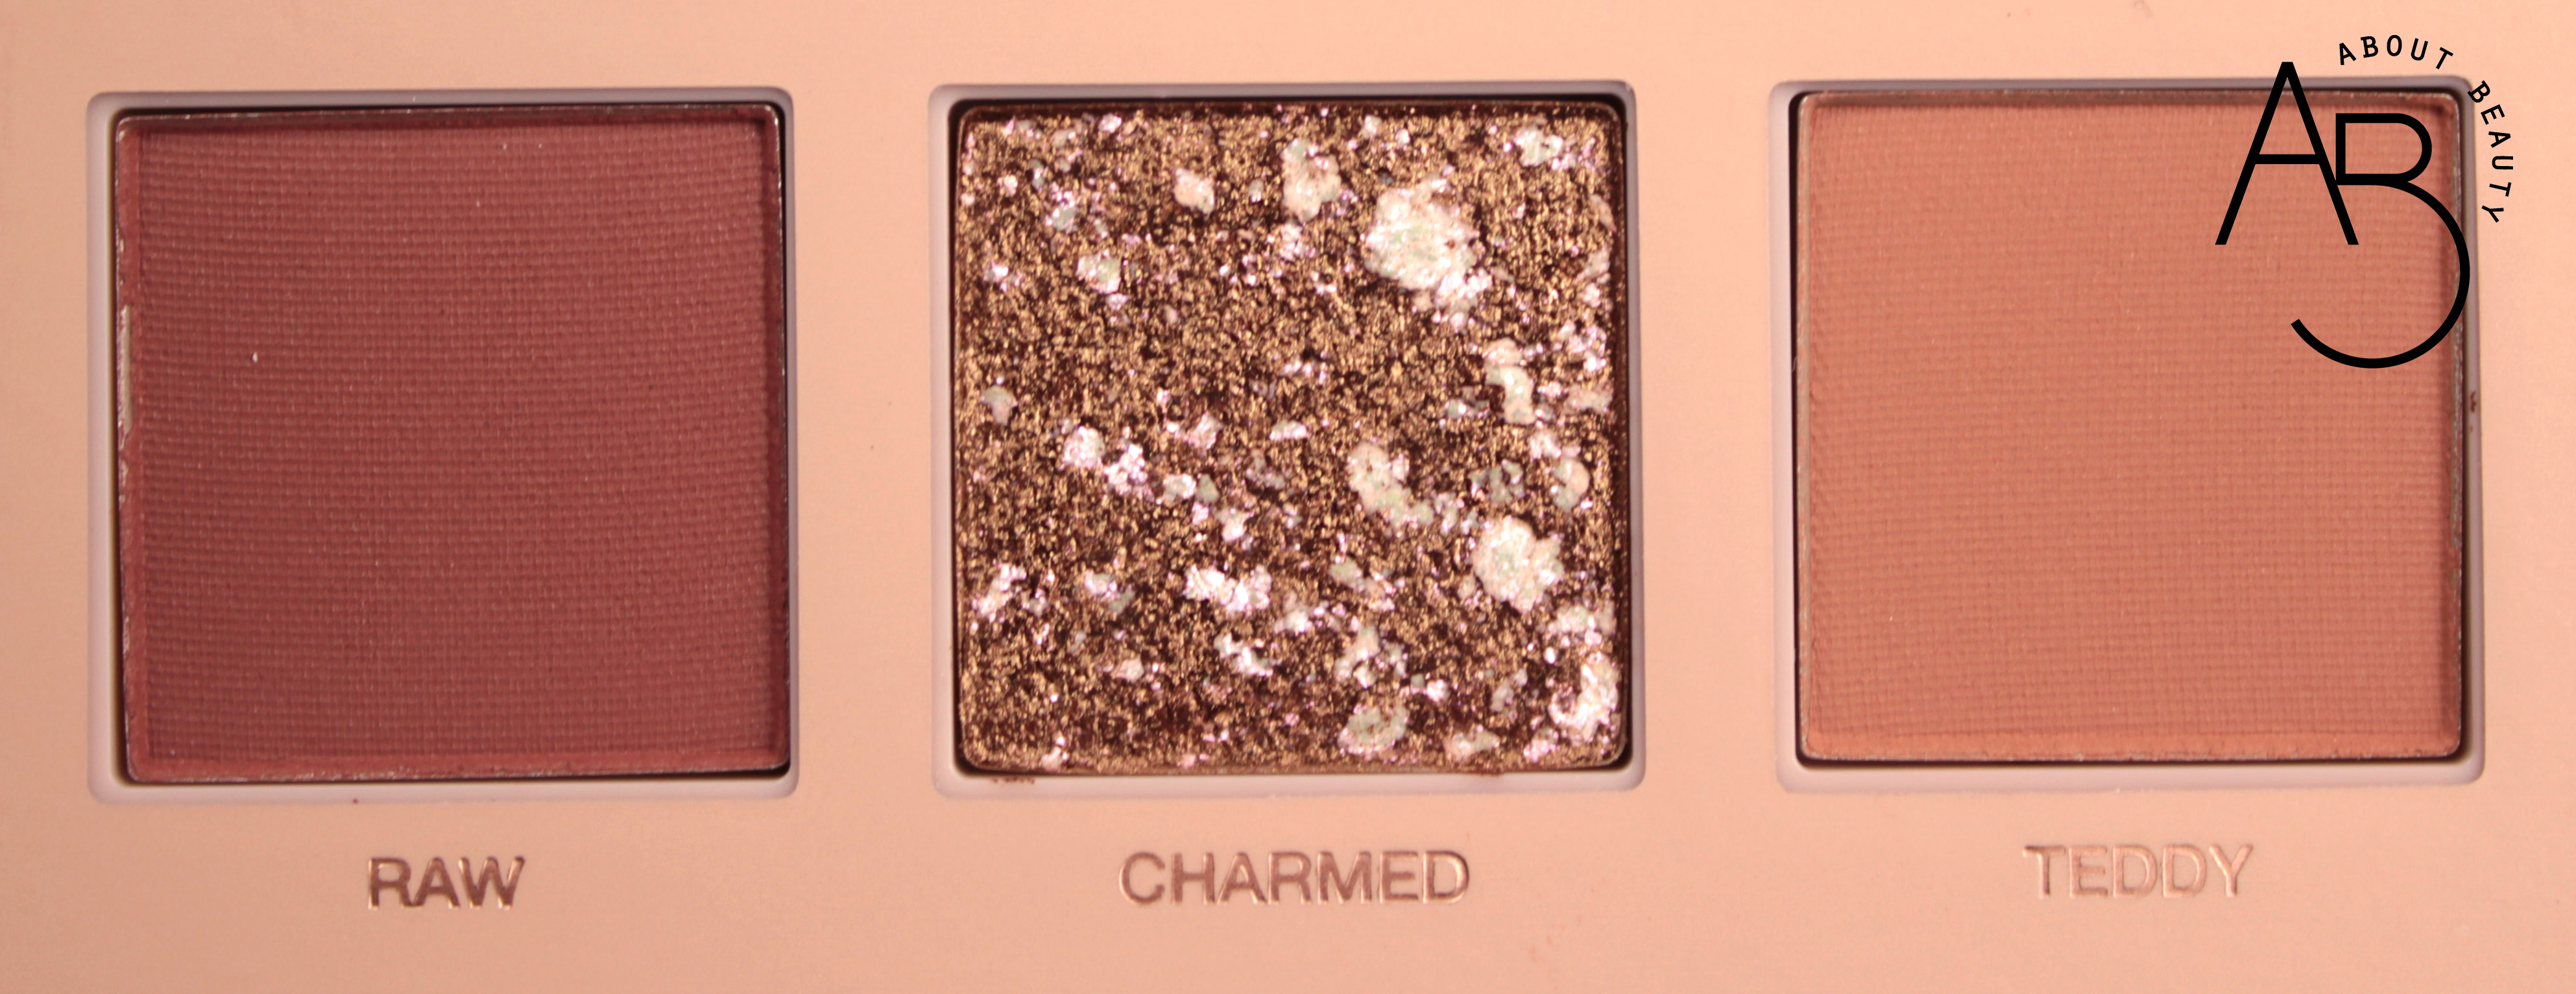 Huda Beauty New Nude Eyeshadow Palette Ombretti - review recensione info prezzo dove acquistare swatch sconto - Raw Charmed Teddy